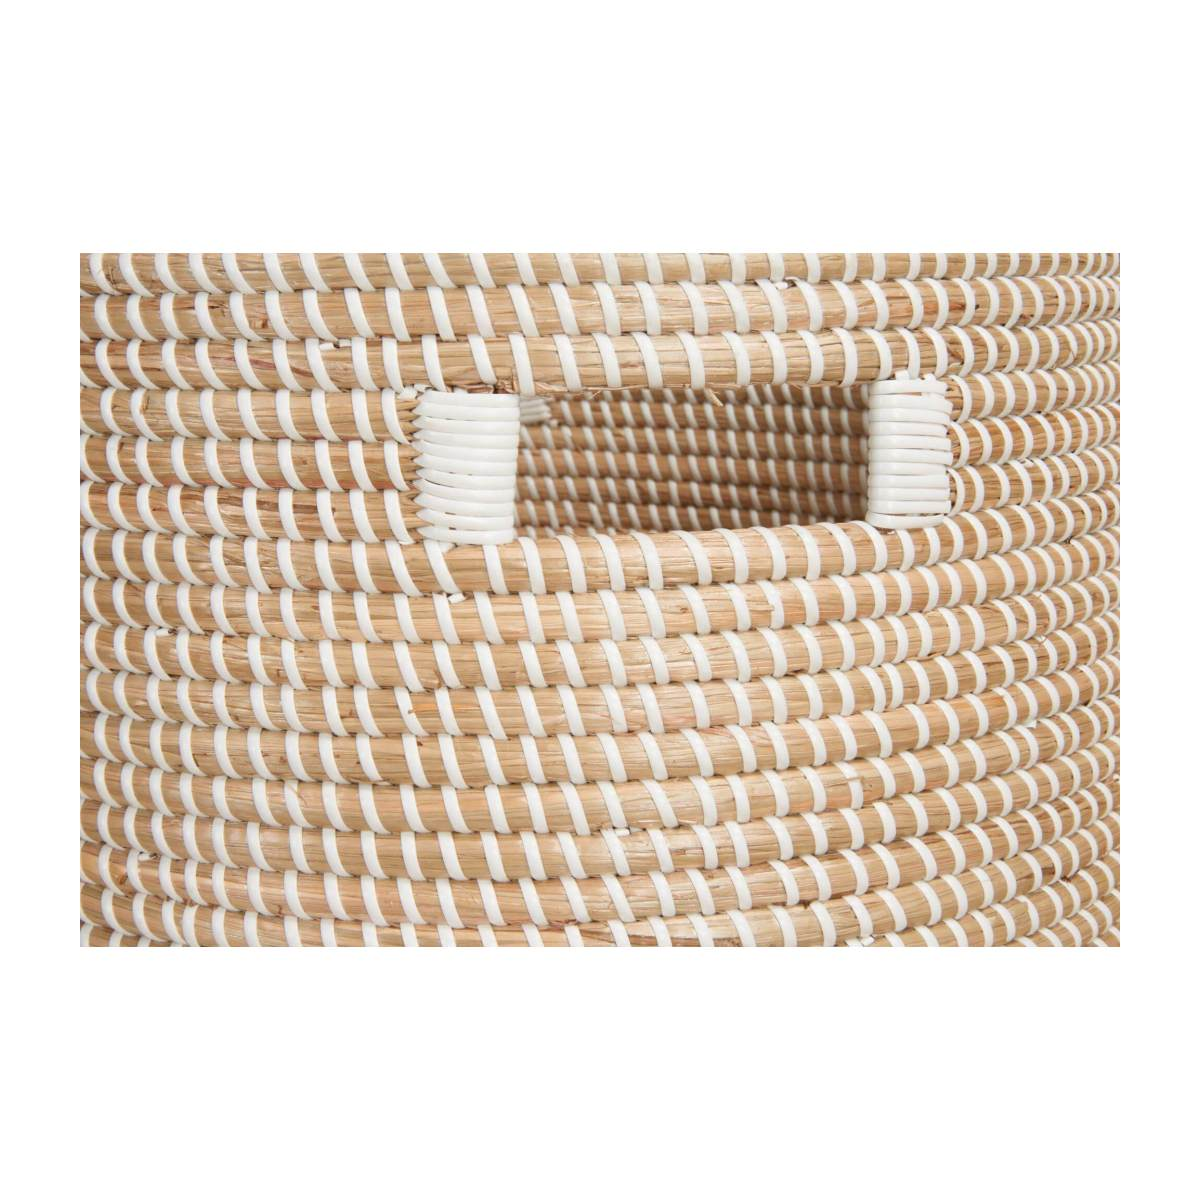 Basket 30cm with storage spaces made of seagrass n°4